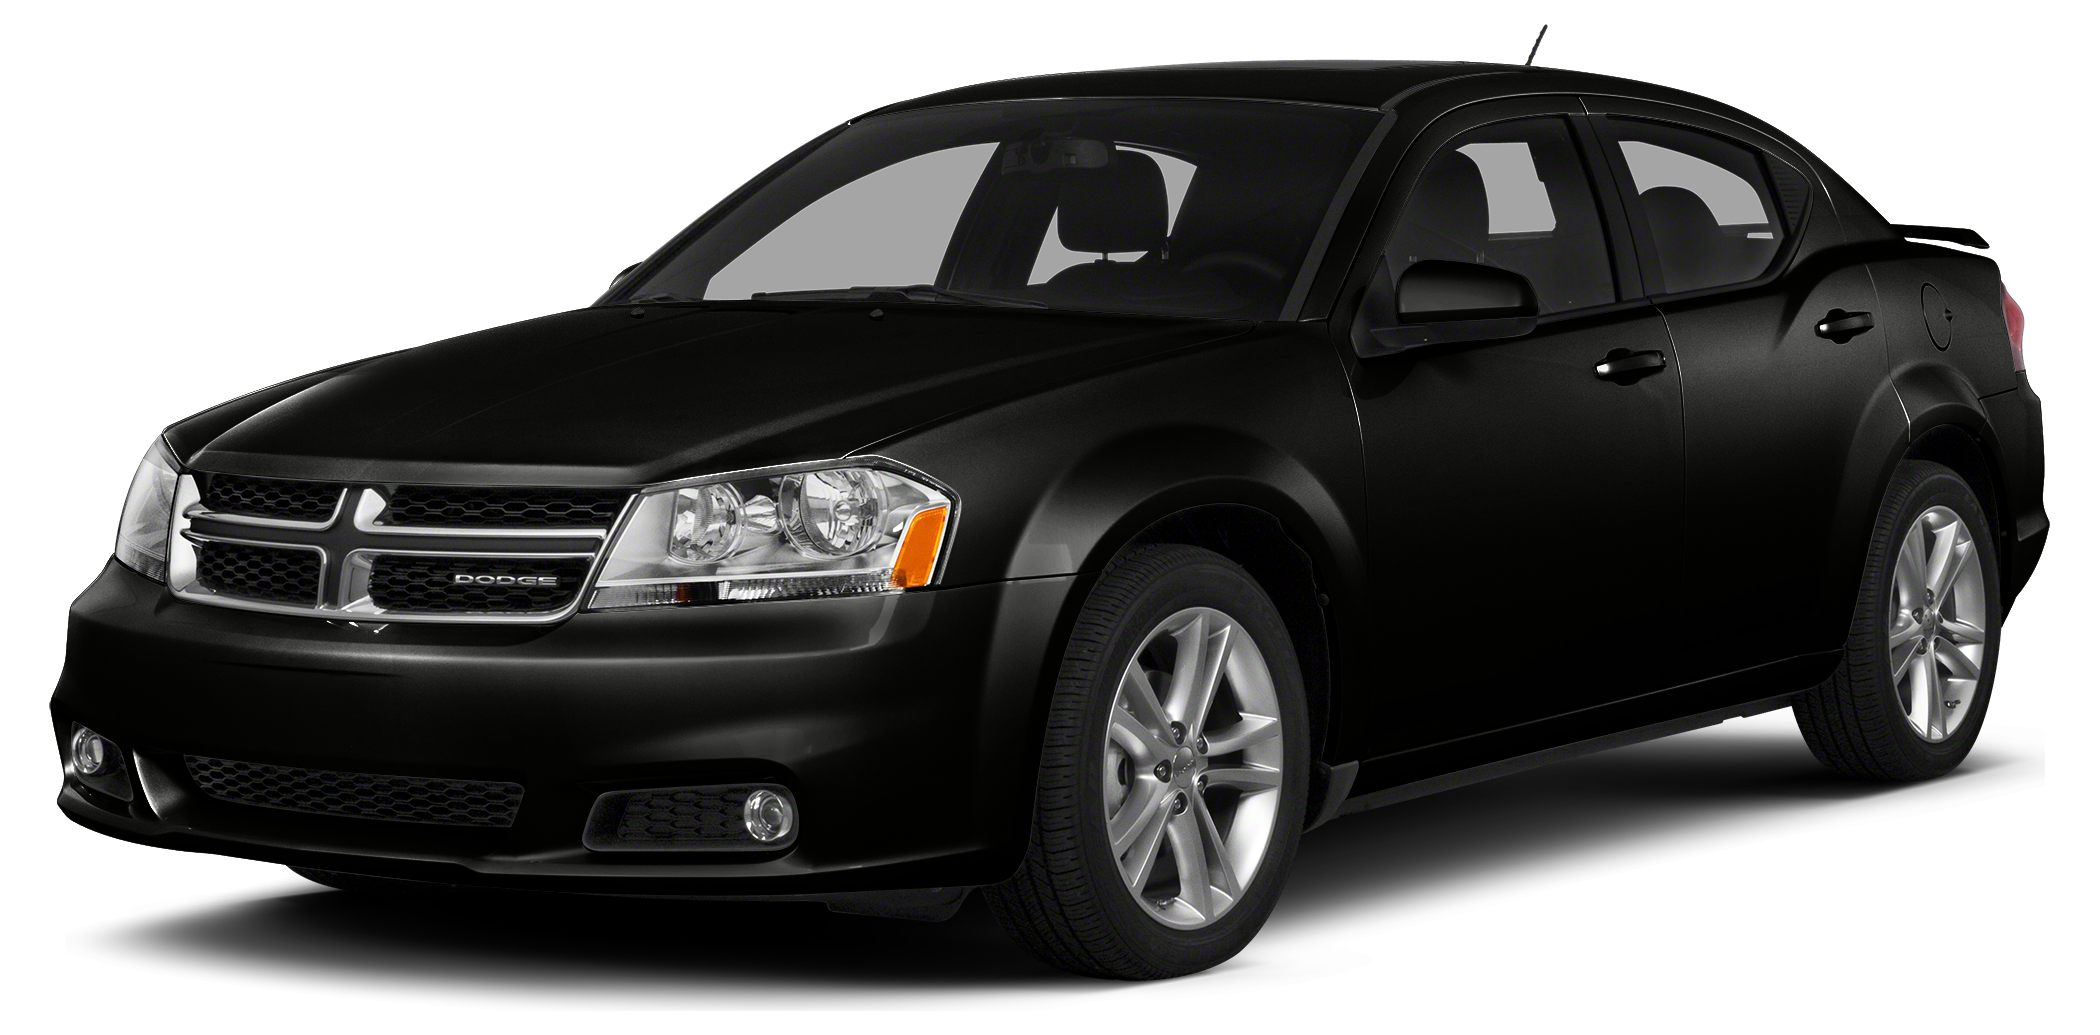 2014 Dodge Avenger SE WE SELL OUR VEHICLES AT WHOLESALE PRICES AND STAND BEHIND OUR CARS  COM